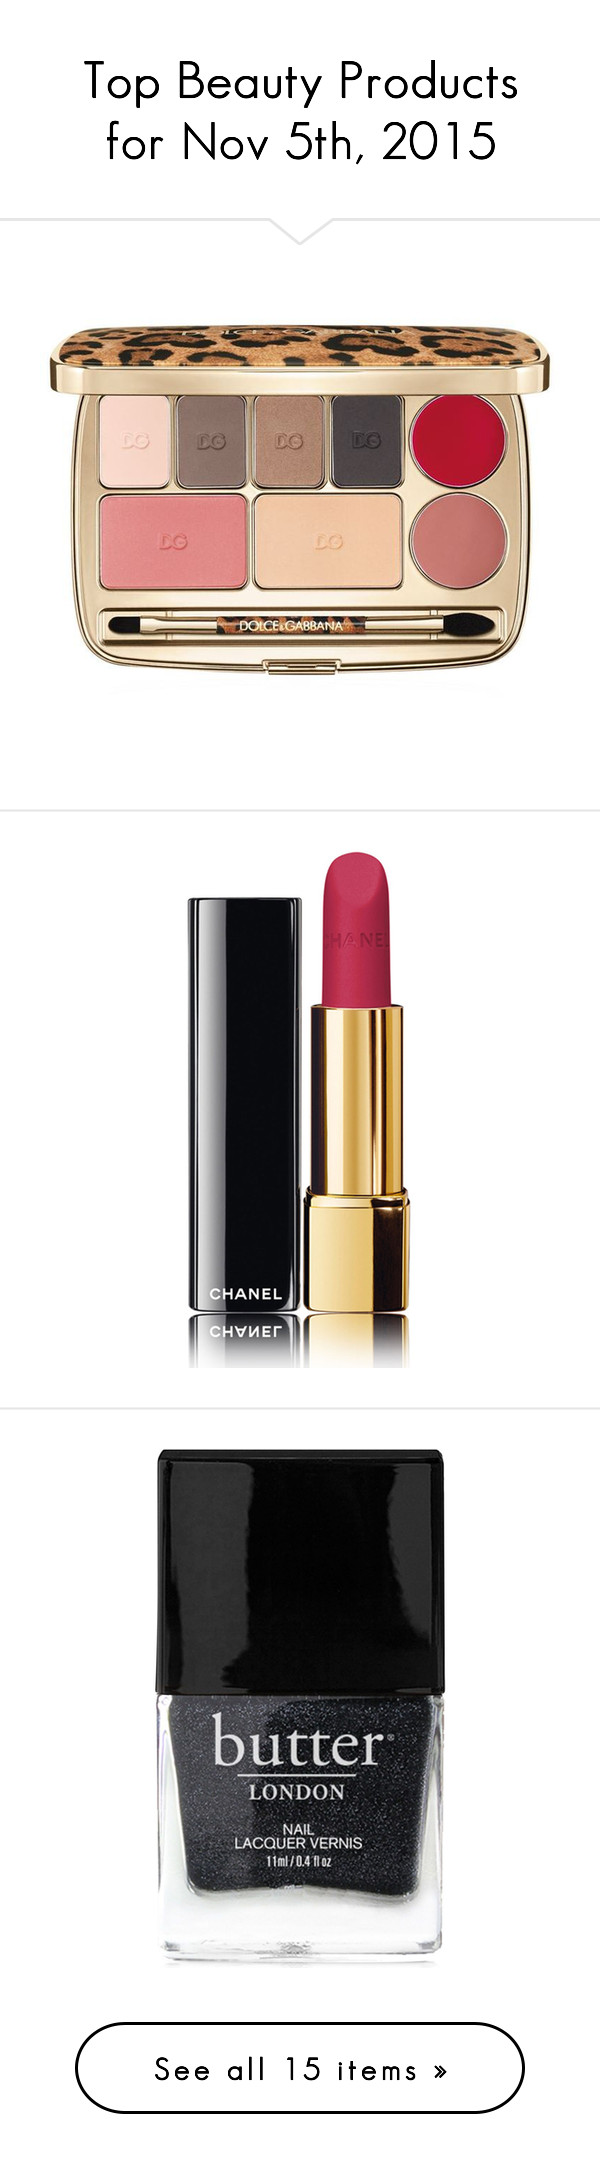 """""""Top Beauty Products for Nov 5th, 2015"""" by polyvore ❤ liked on Polyvore featuring beauty products, makeup, palette makeup, dolce gabbana makeup, dolce gabbana cosmetics, dolce&gabbana, lip makeup, lipstick, lèvres and long wearing lipstick"""